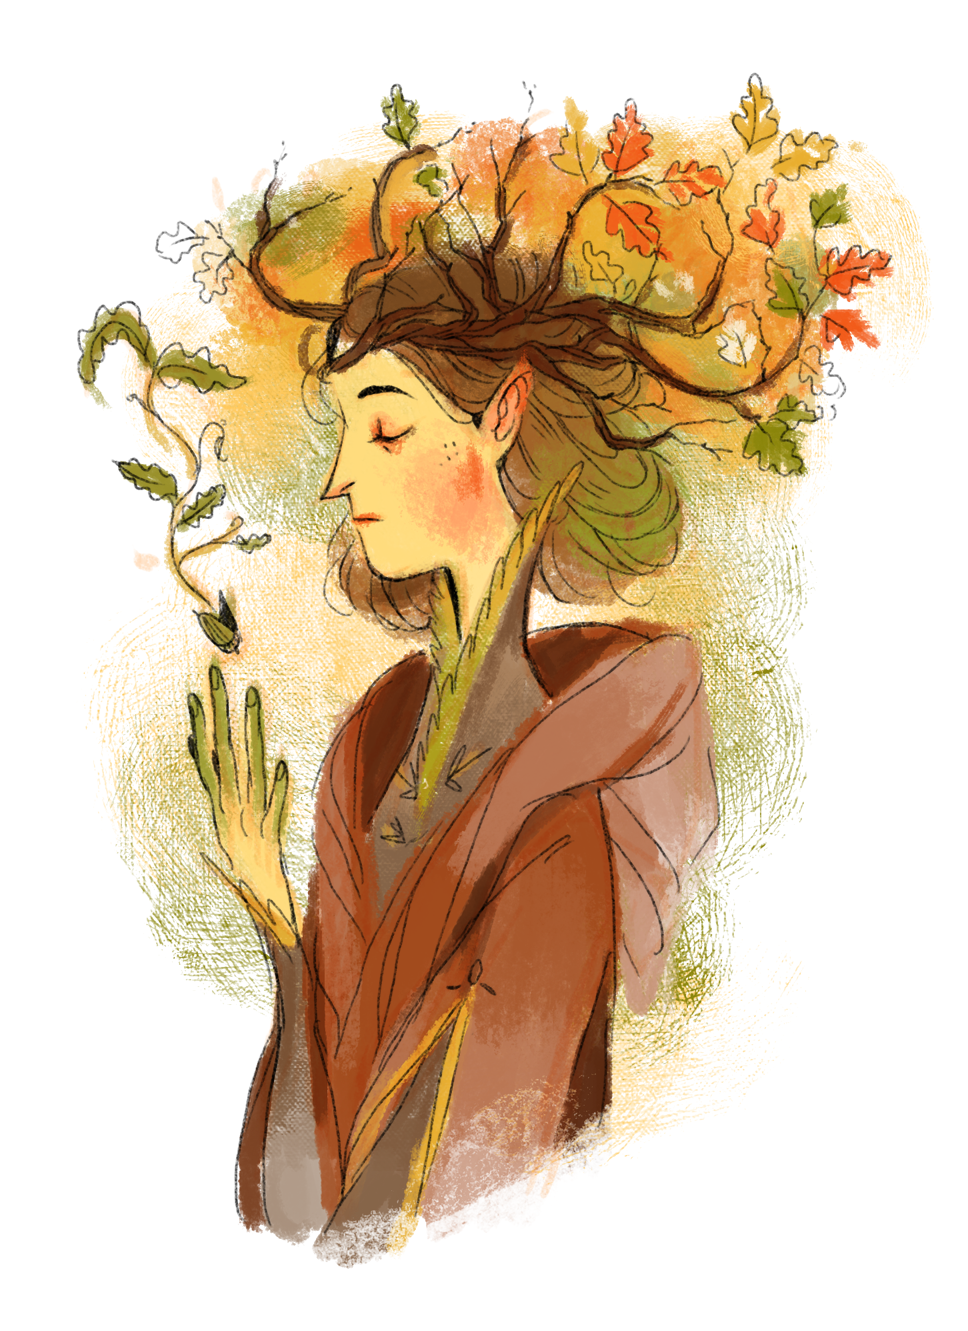 Yavanna sketch for the sidebar of a sideblog I'll probs never use but whatever